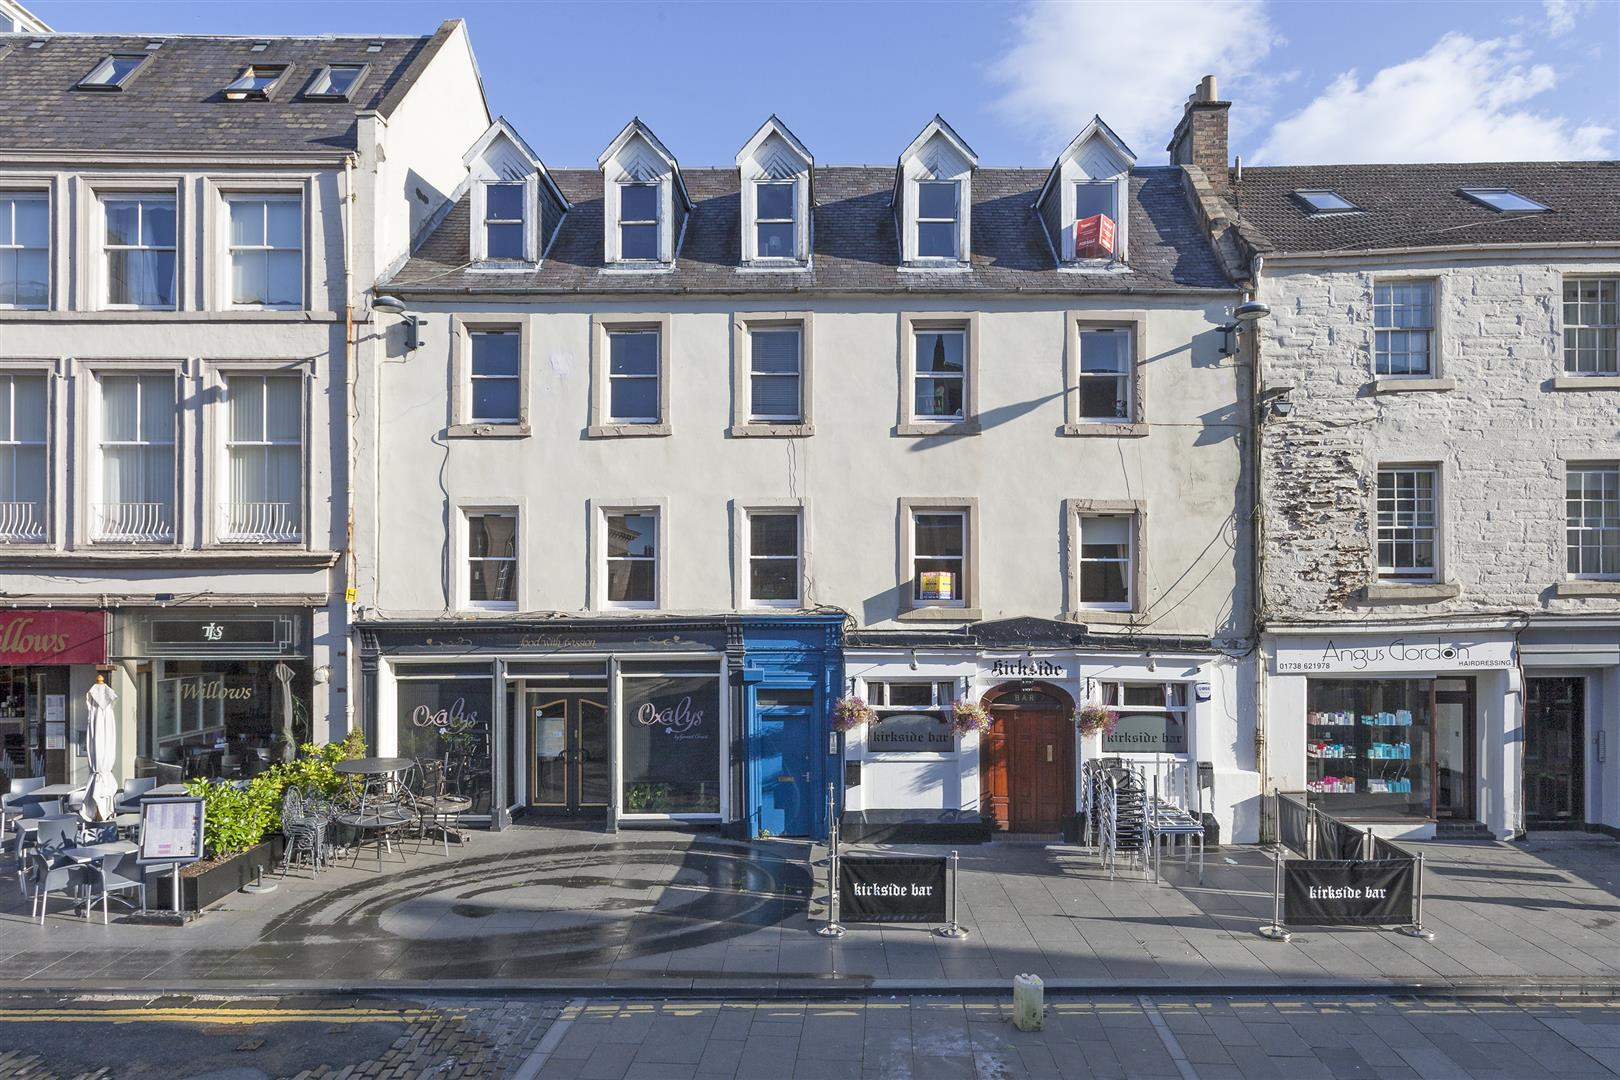 Flat 2, 9, St. Johns Place, Perth, Perthshire, PH1 5SZ, UK